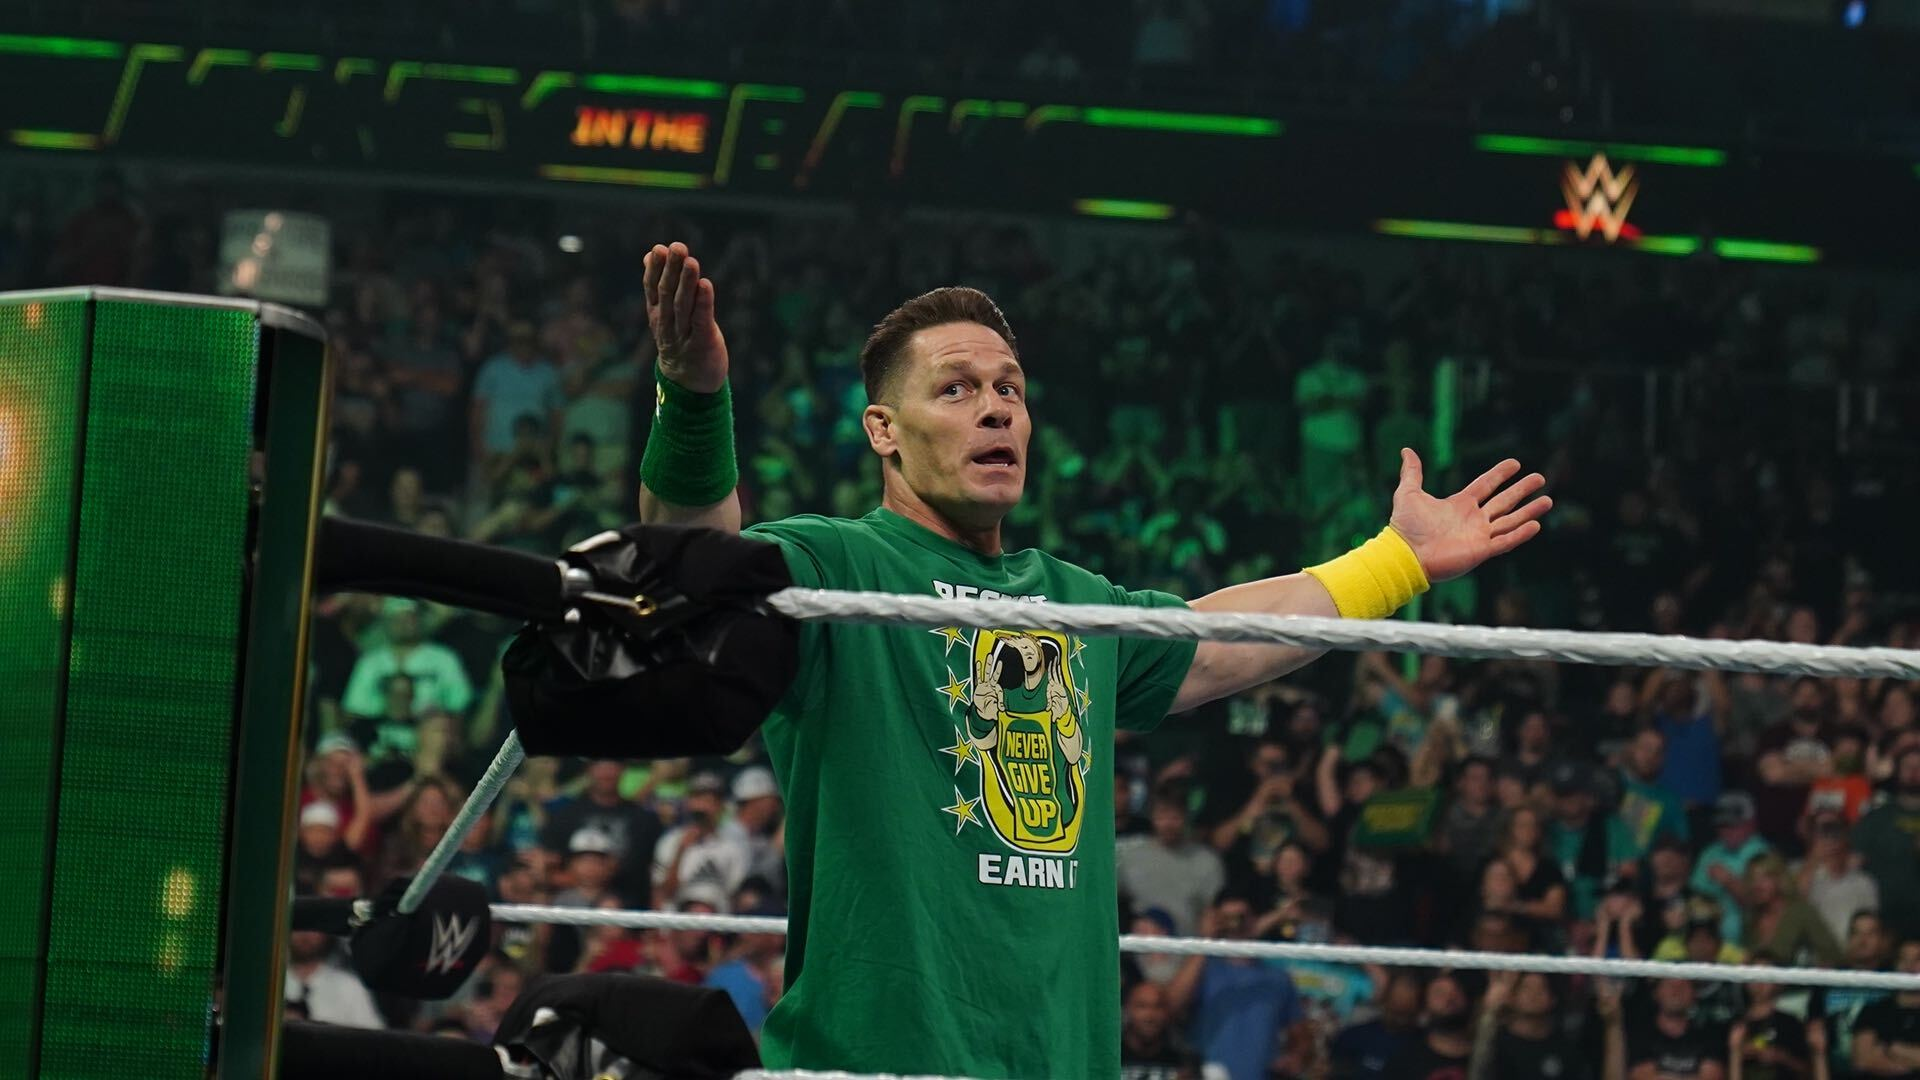 WWE Raw Preview (19/07/21): Money In The Bank Fallouts; John Cena Returns 103